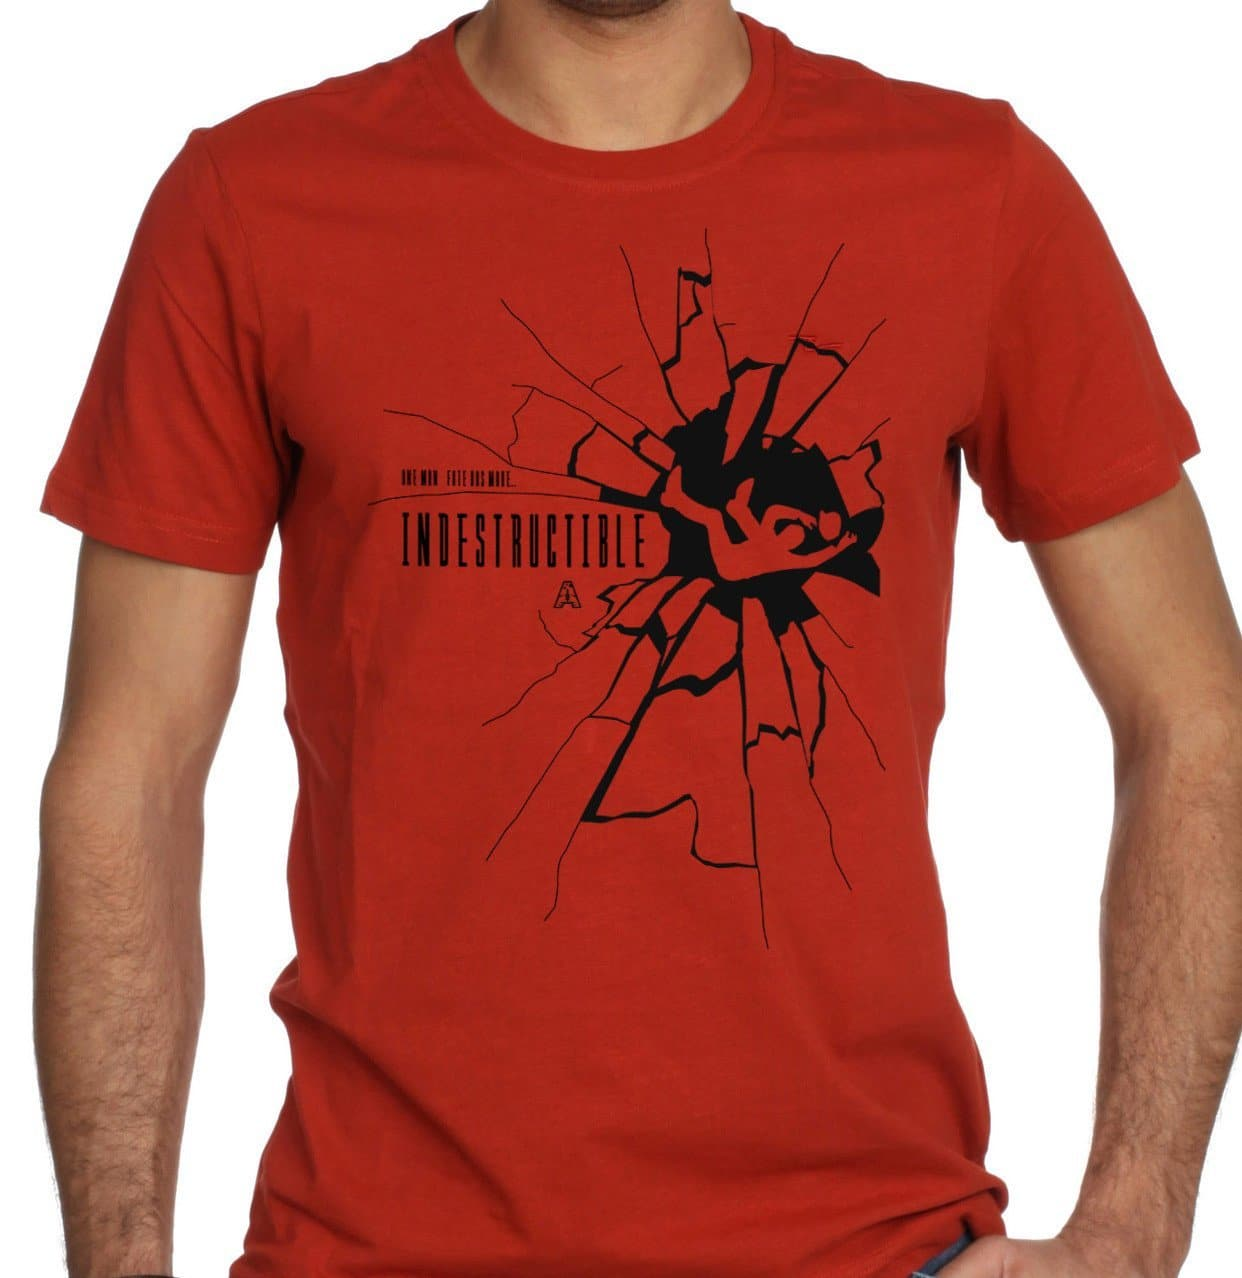 Captain Scarlet inspired T-Shirt [5% to Stroke Association] - Gerry Anderson Official